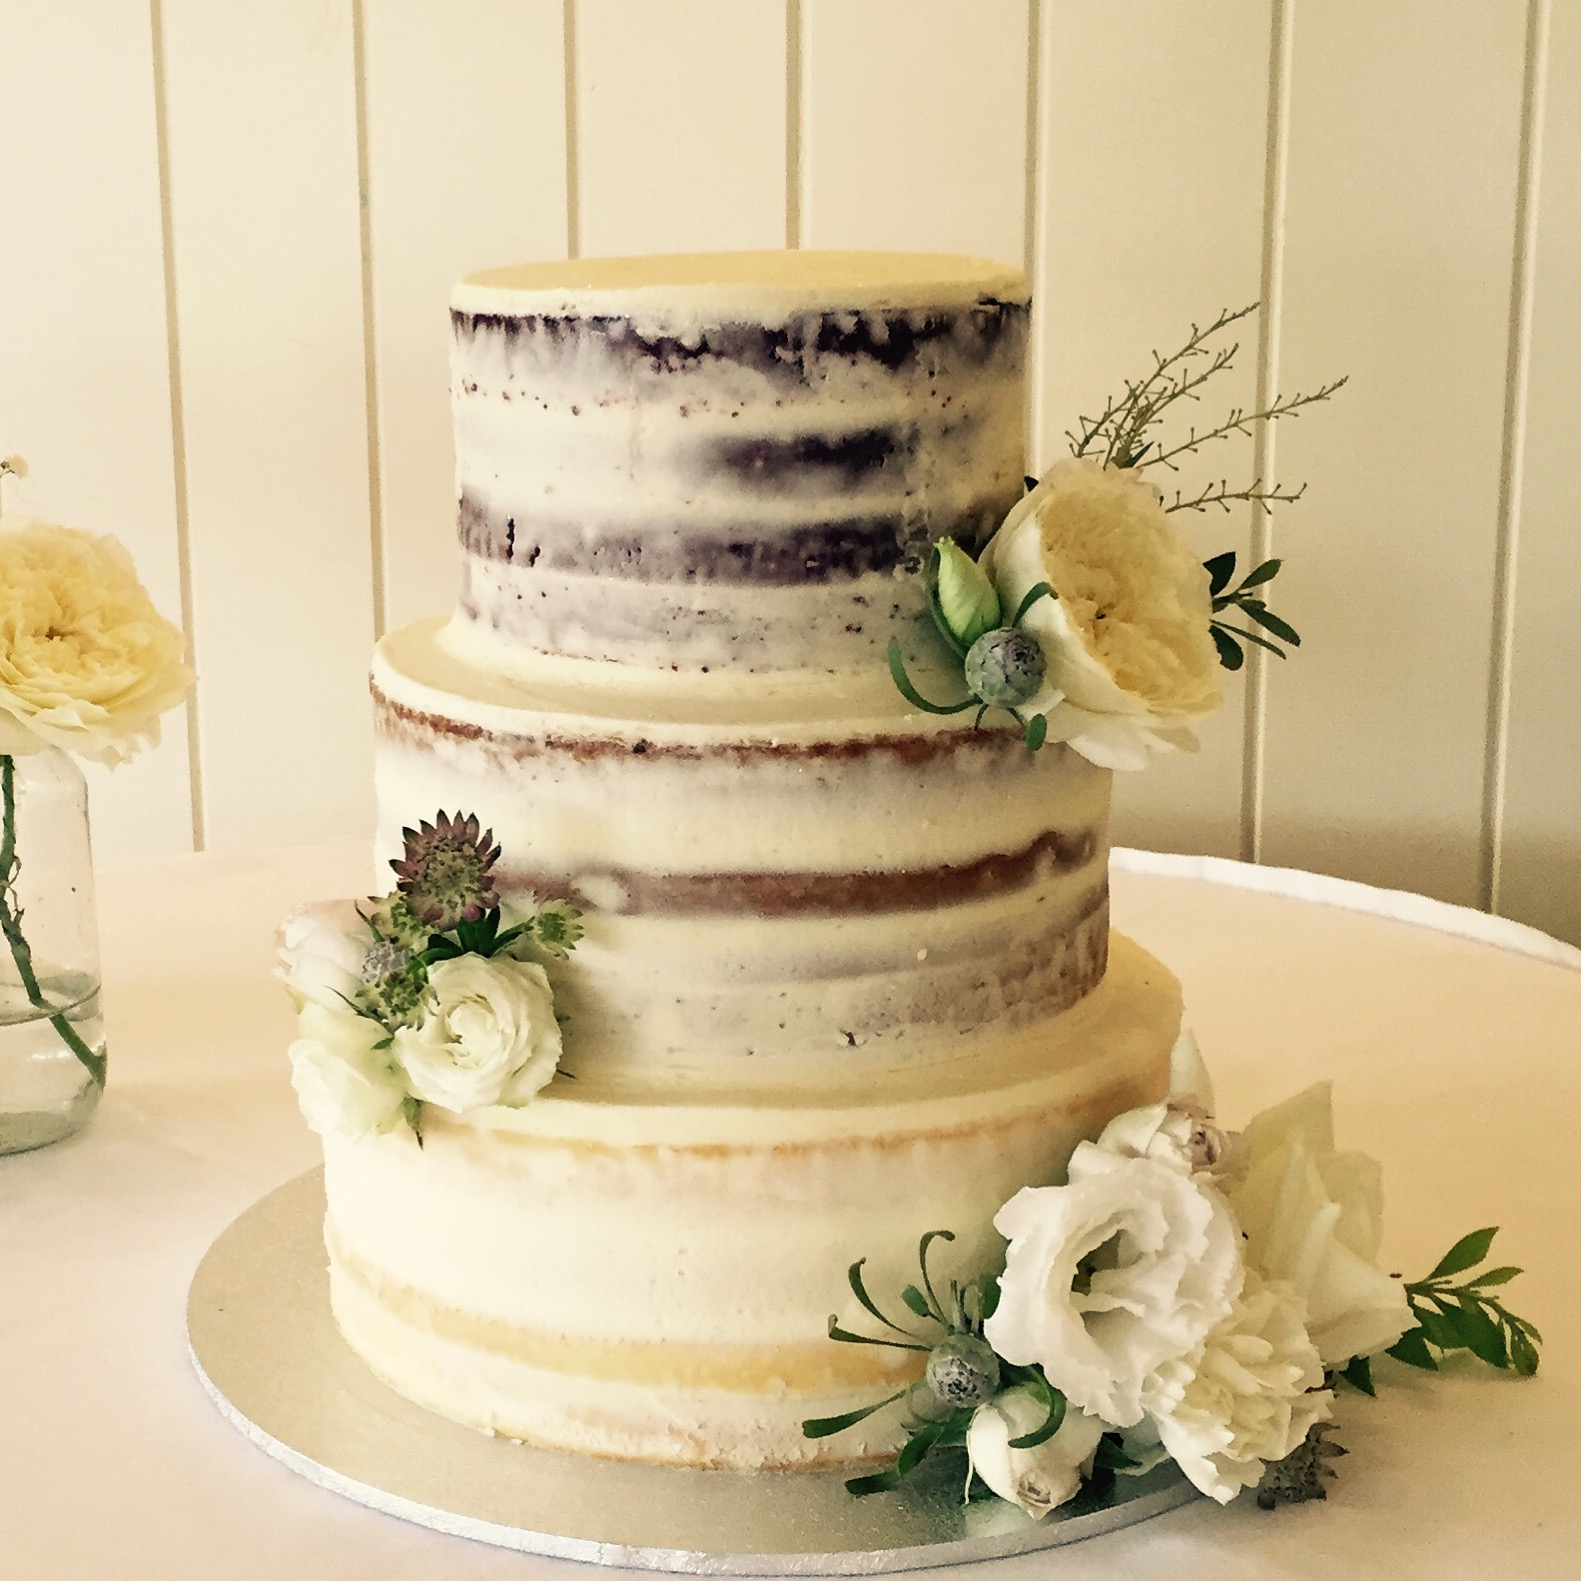 2 tier barely frosted wedding cake by Vanilla Pod.JPG